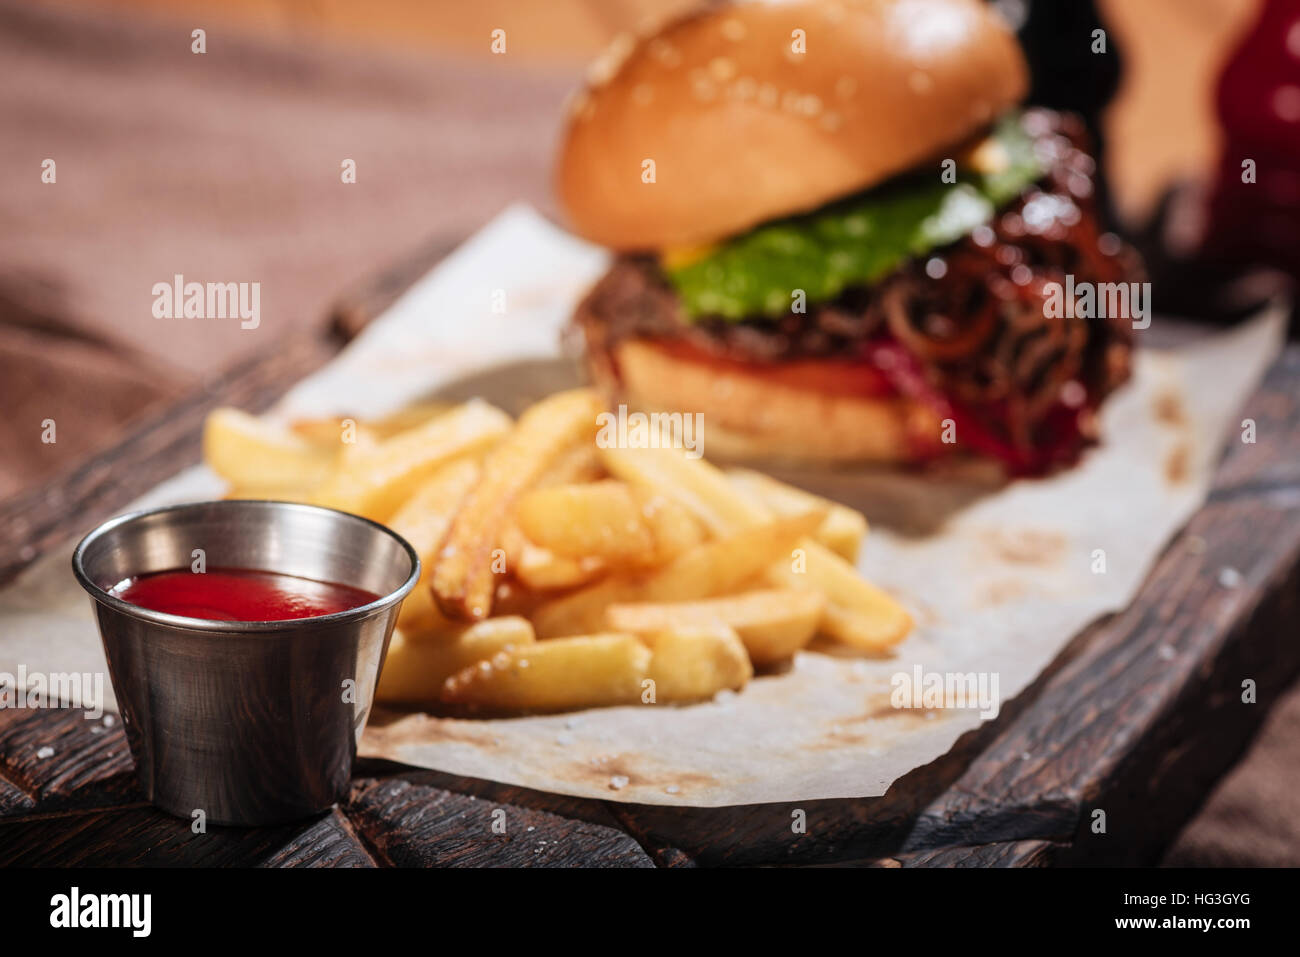 Close up of sauce being served to burger - Stock Image